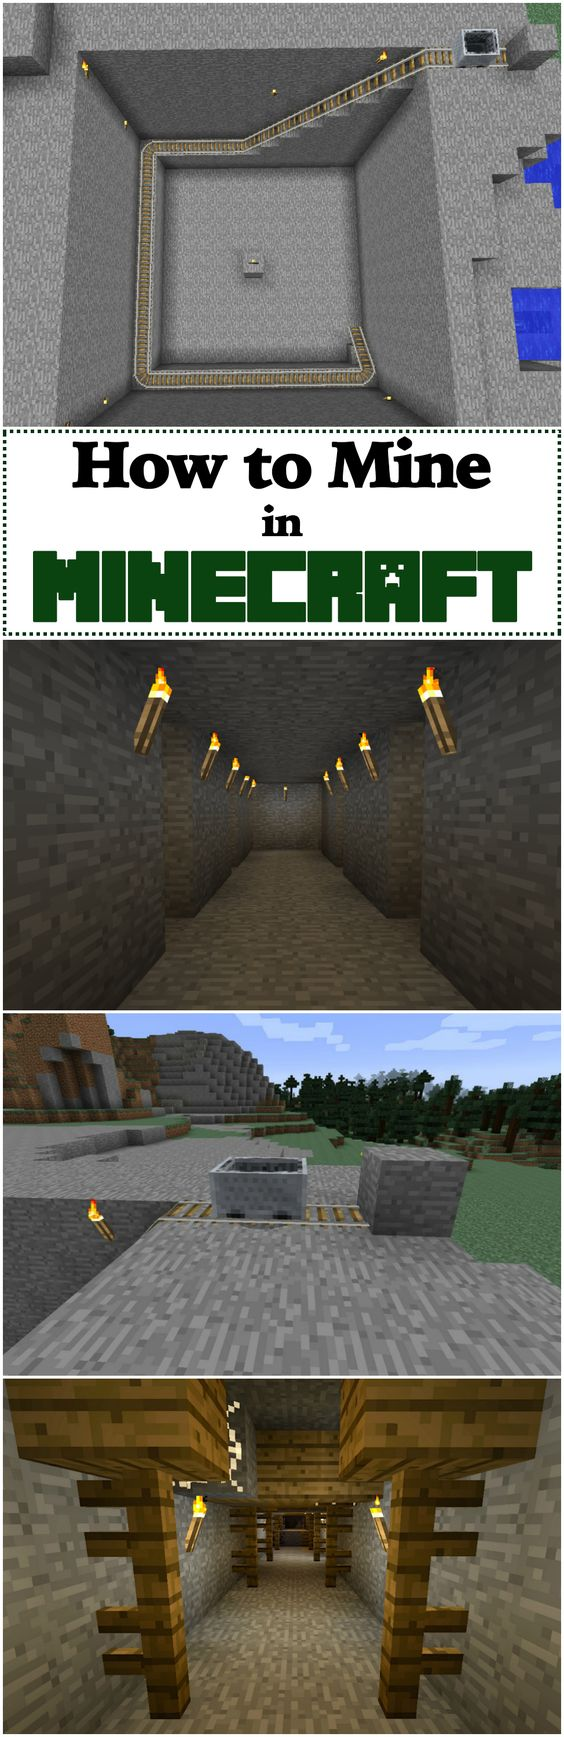 How to Mine in Minecraft   Learn about the different kinds of mines you can use and how to make all the tools you need to be an experienced miner in Minecraft.